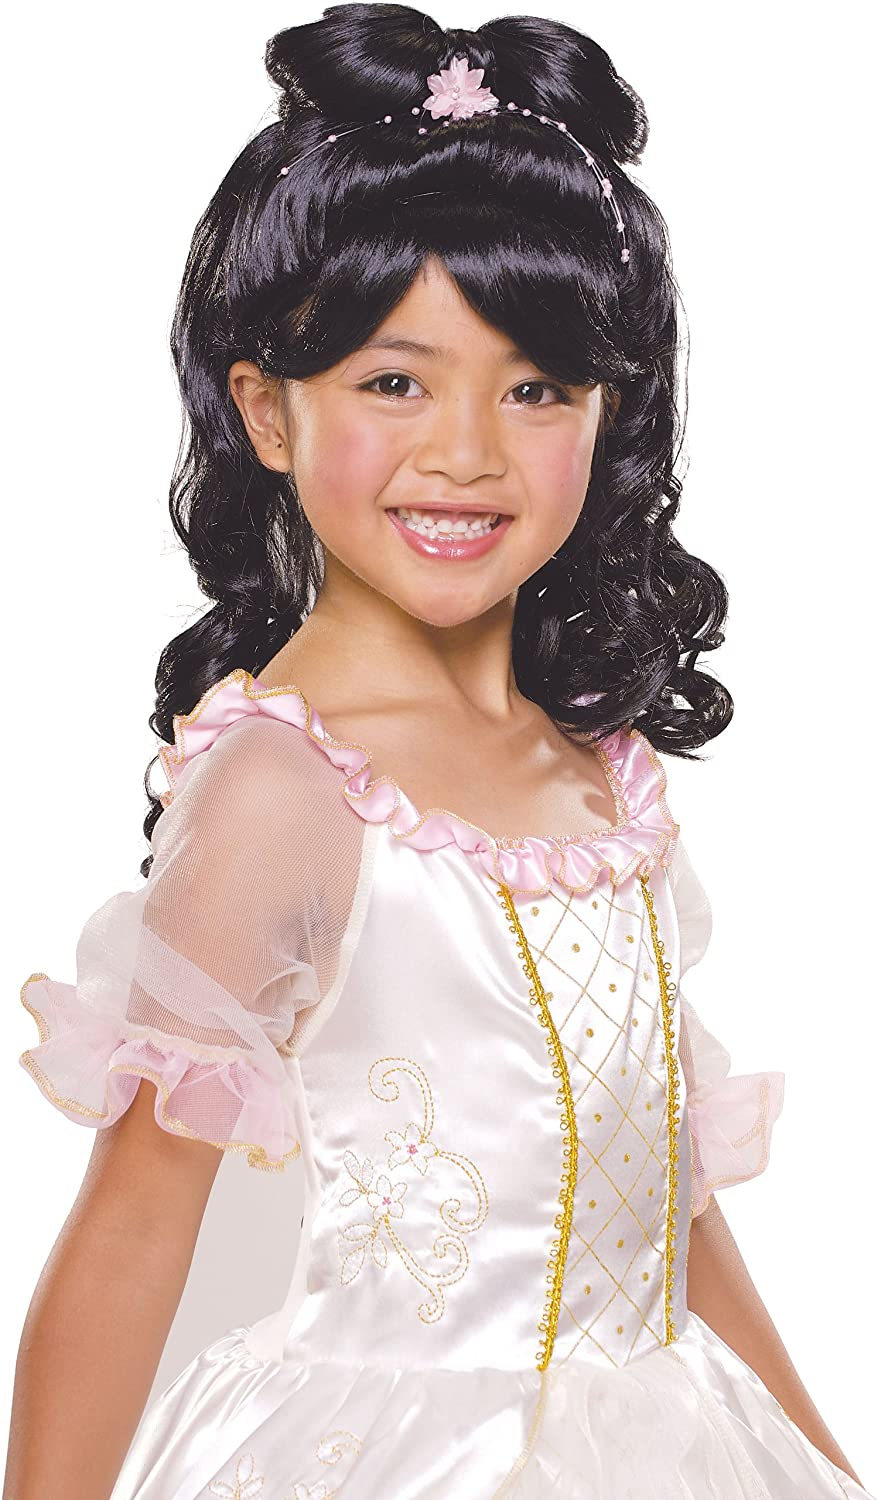 Rubie's Elegant Princess Child's Costume Wig, Blonde Rubies - Domestic 51418